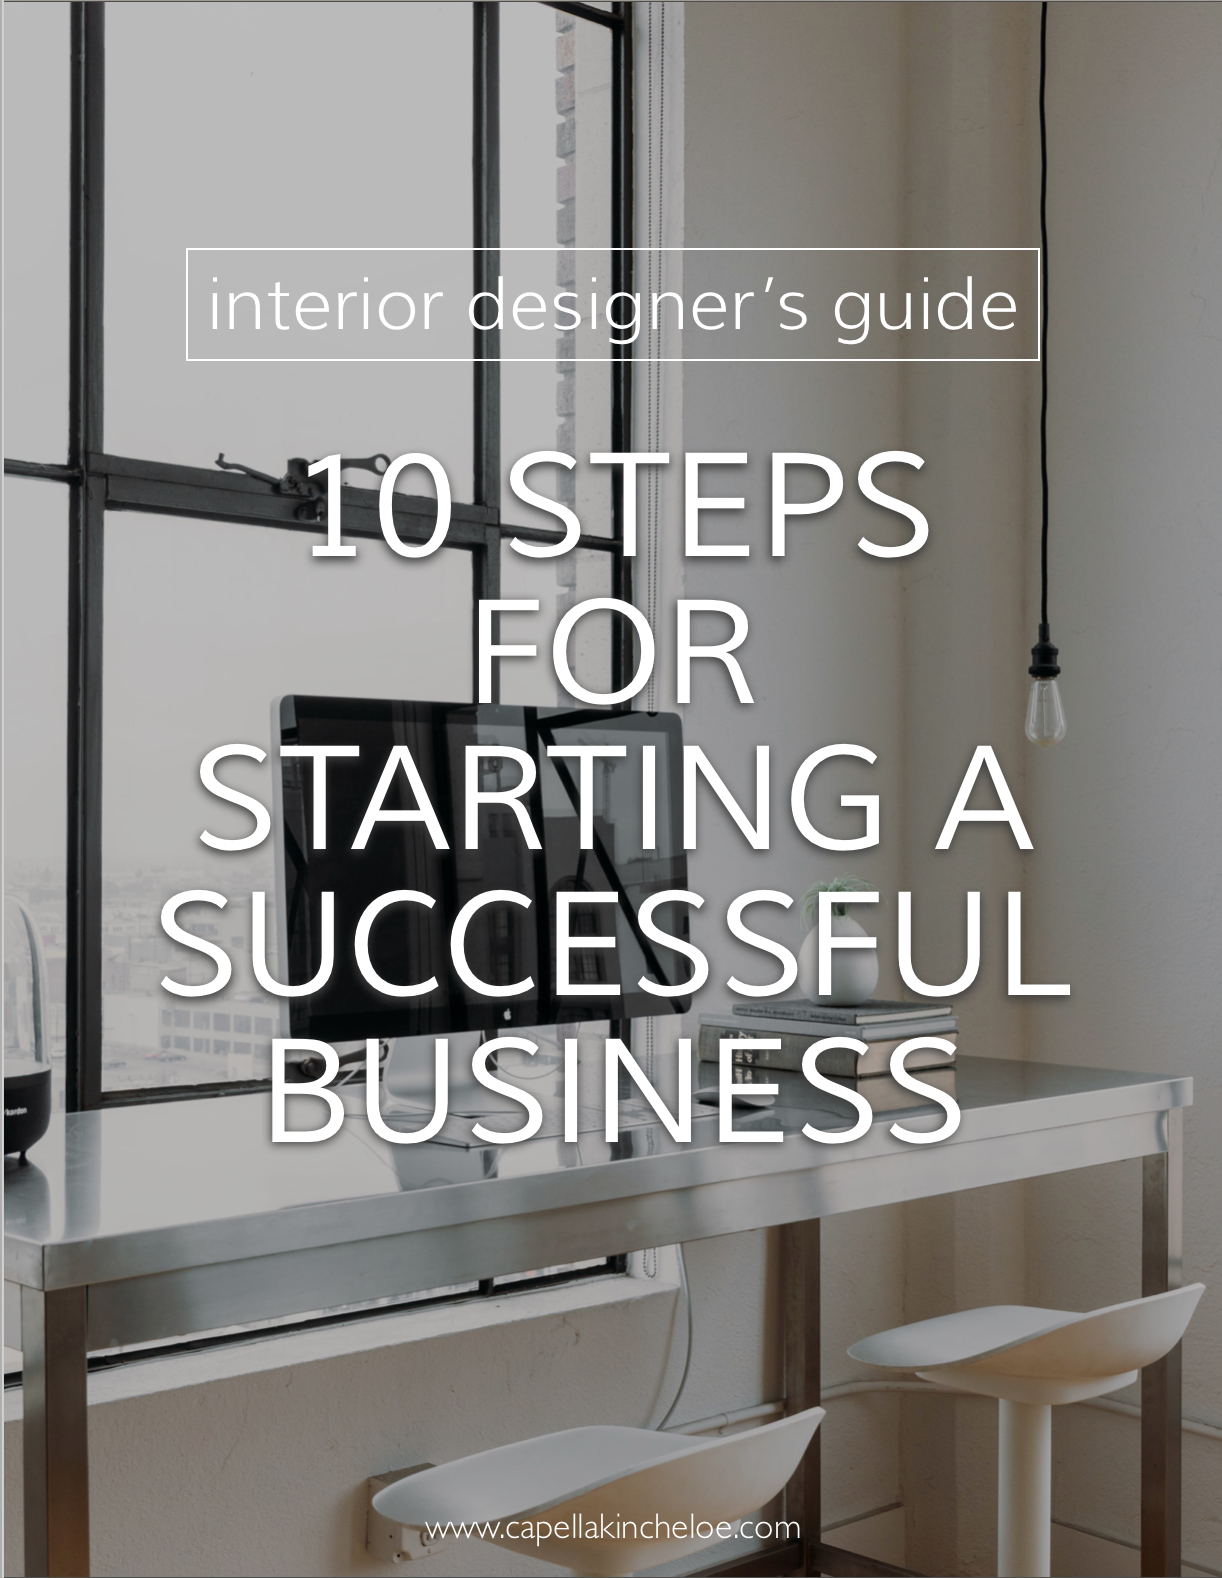 Yes! You can start a successful interior design business. Here are some fundamentals to get you off on the right foot! #interiordesignbusiness #cktradesecrets